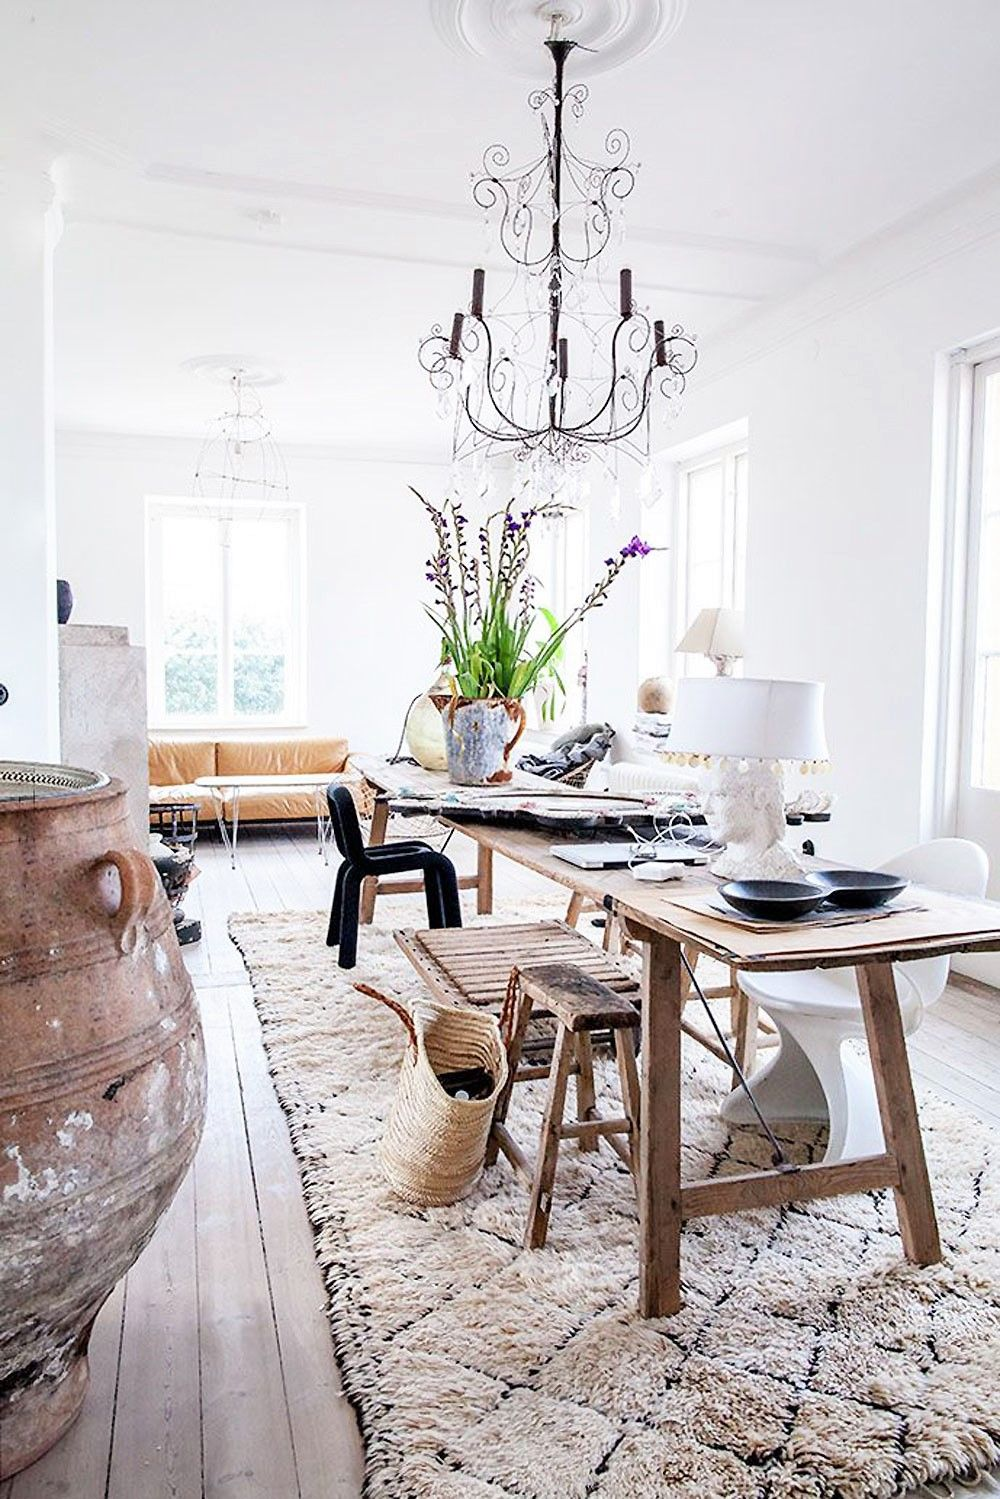 Vintage Rugs : tips on decorating your interior   Pinterest ...